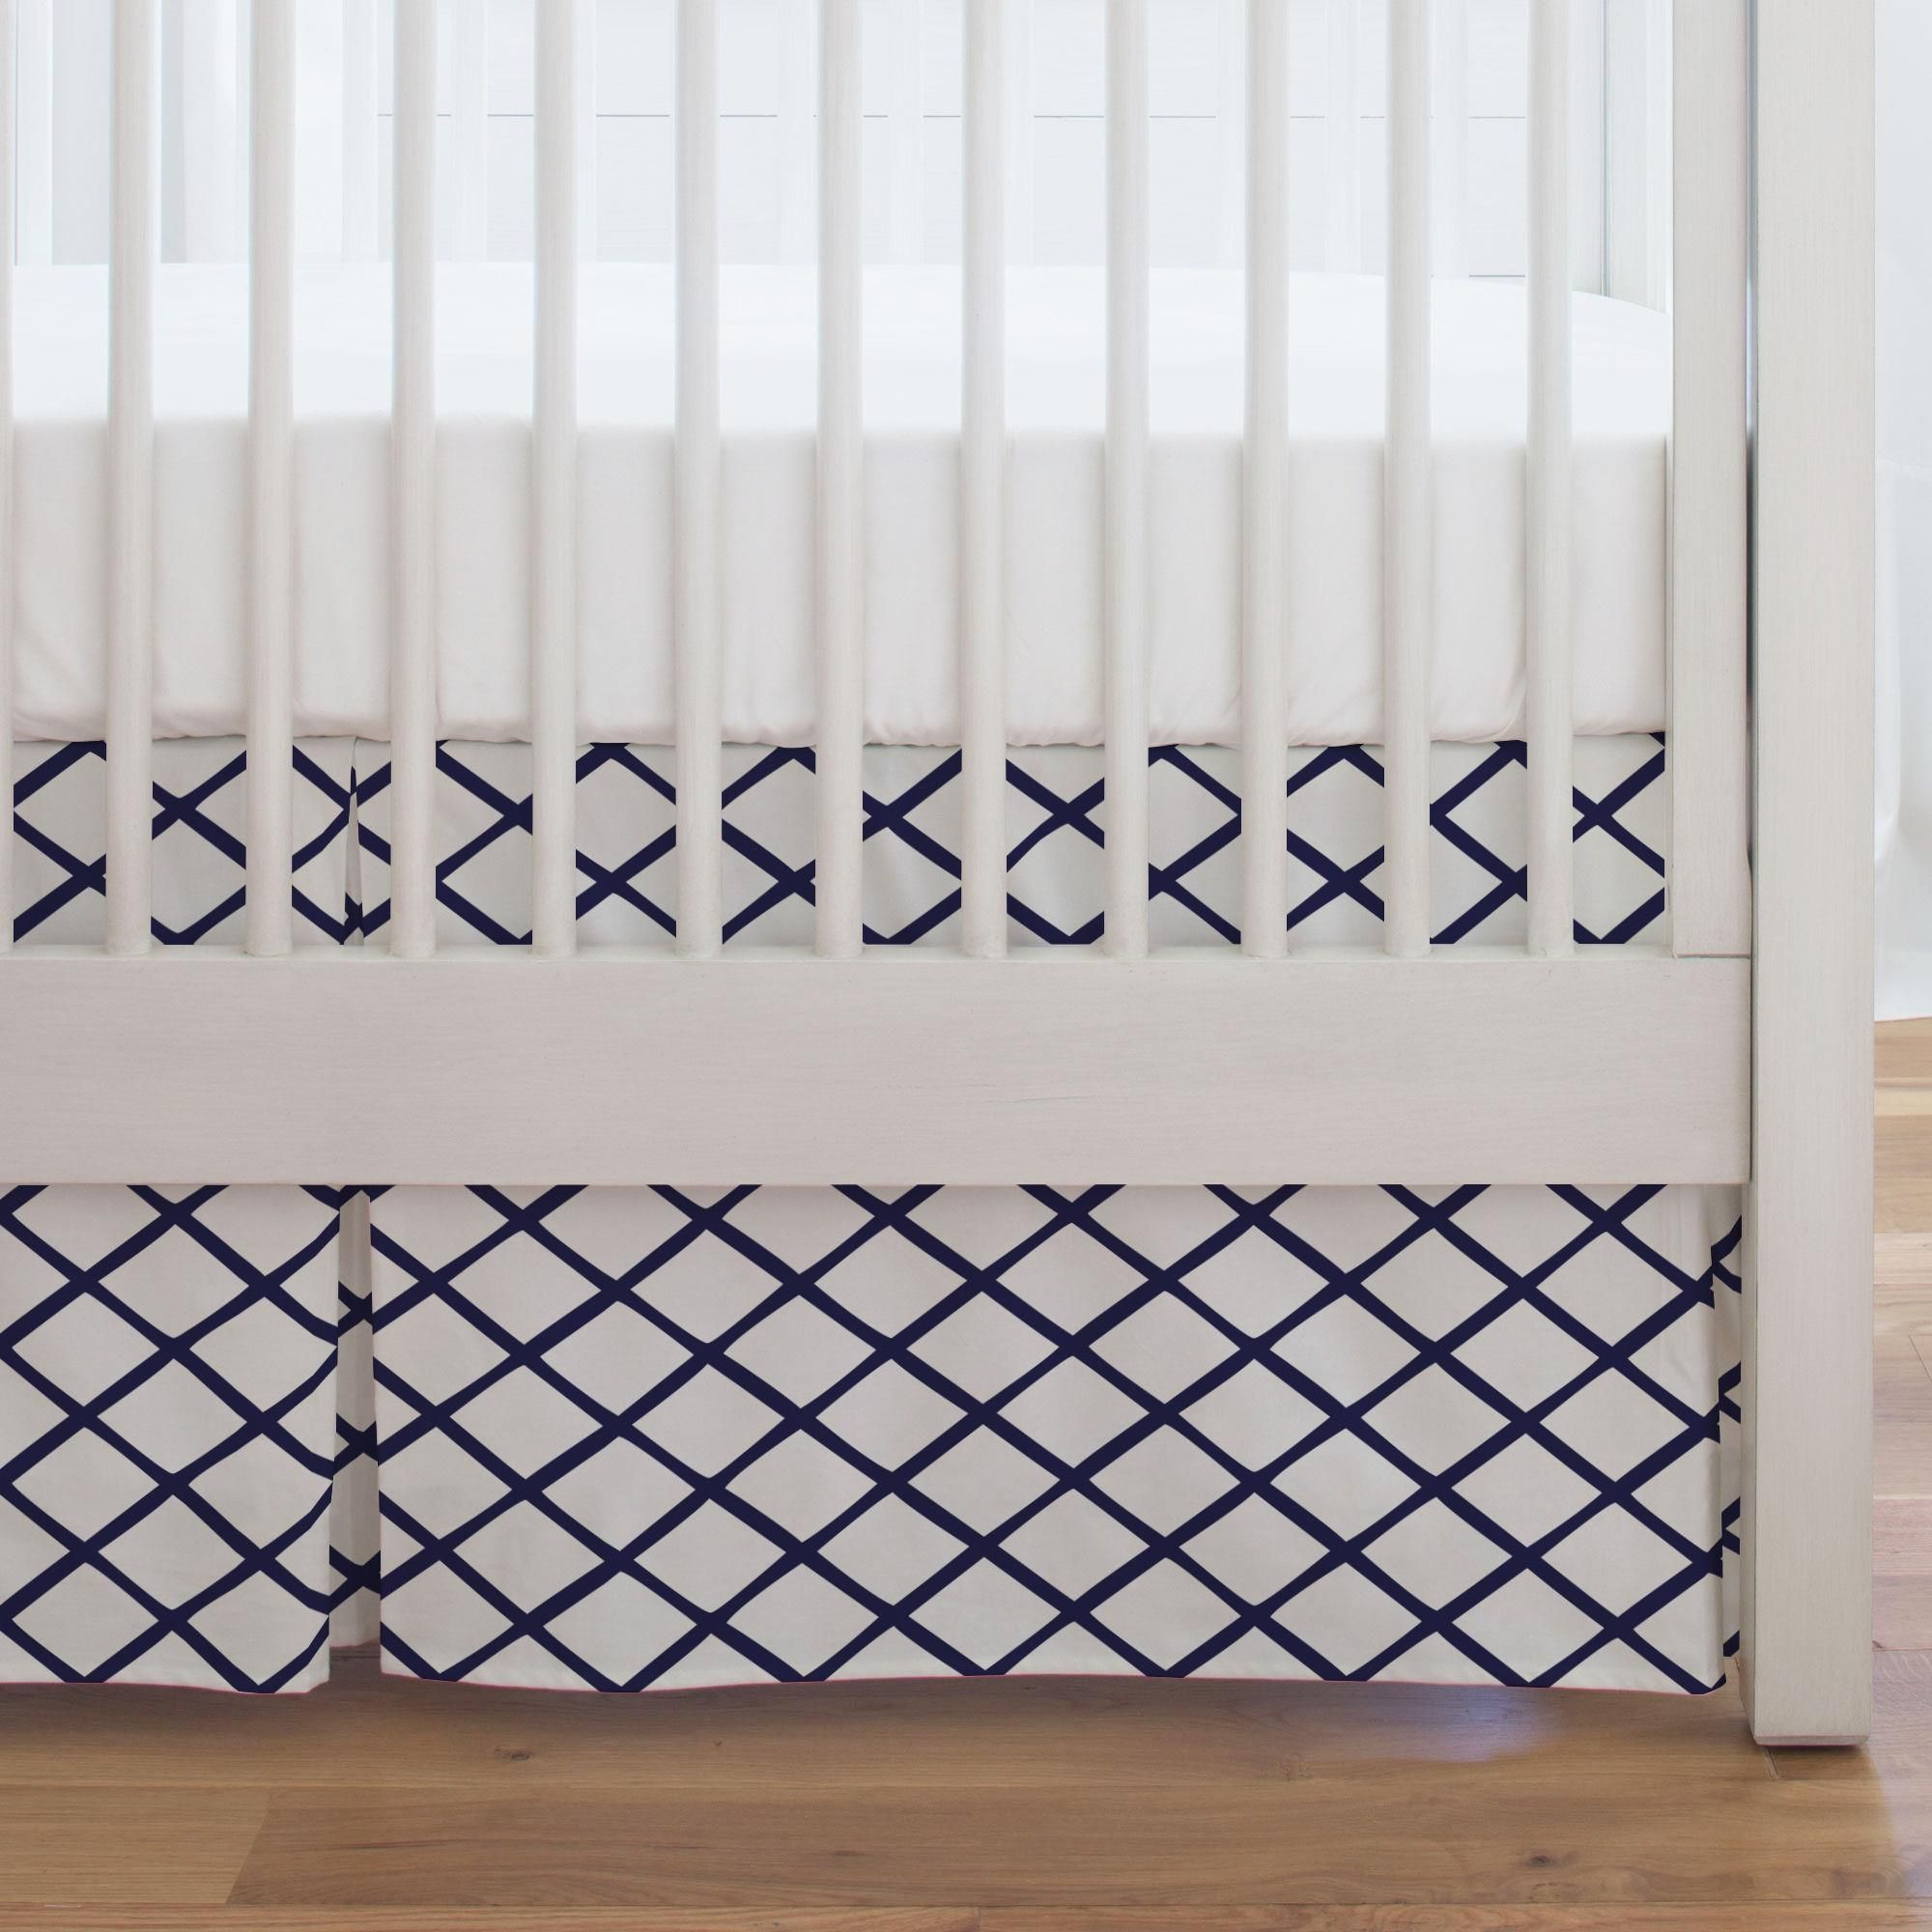 Get Your Crib Picture Perfect With Our Single Pleat Crib Skirt Finished Length Approximately 16 17 Inches Fits Crib Skirts Navy Blue Nursery Carousel Designs